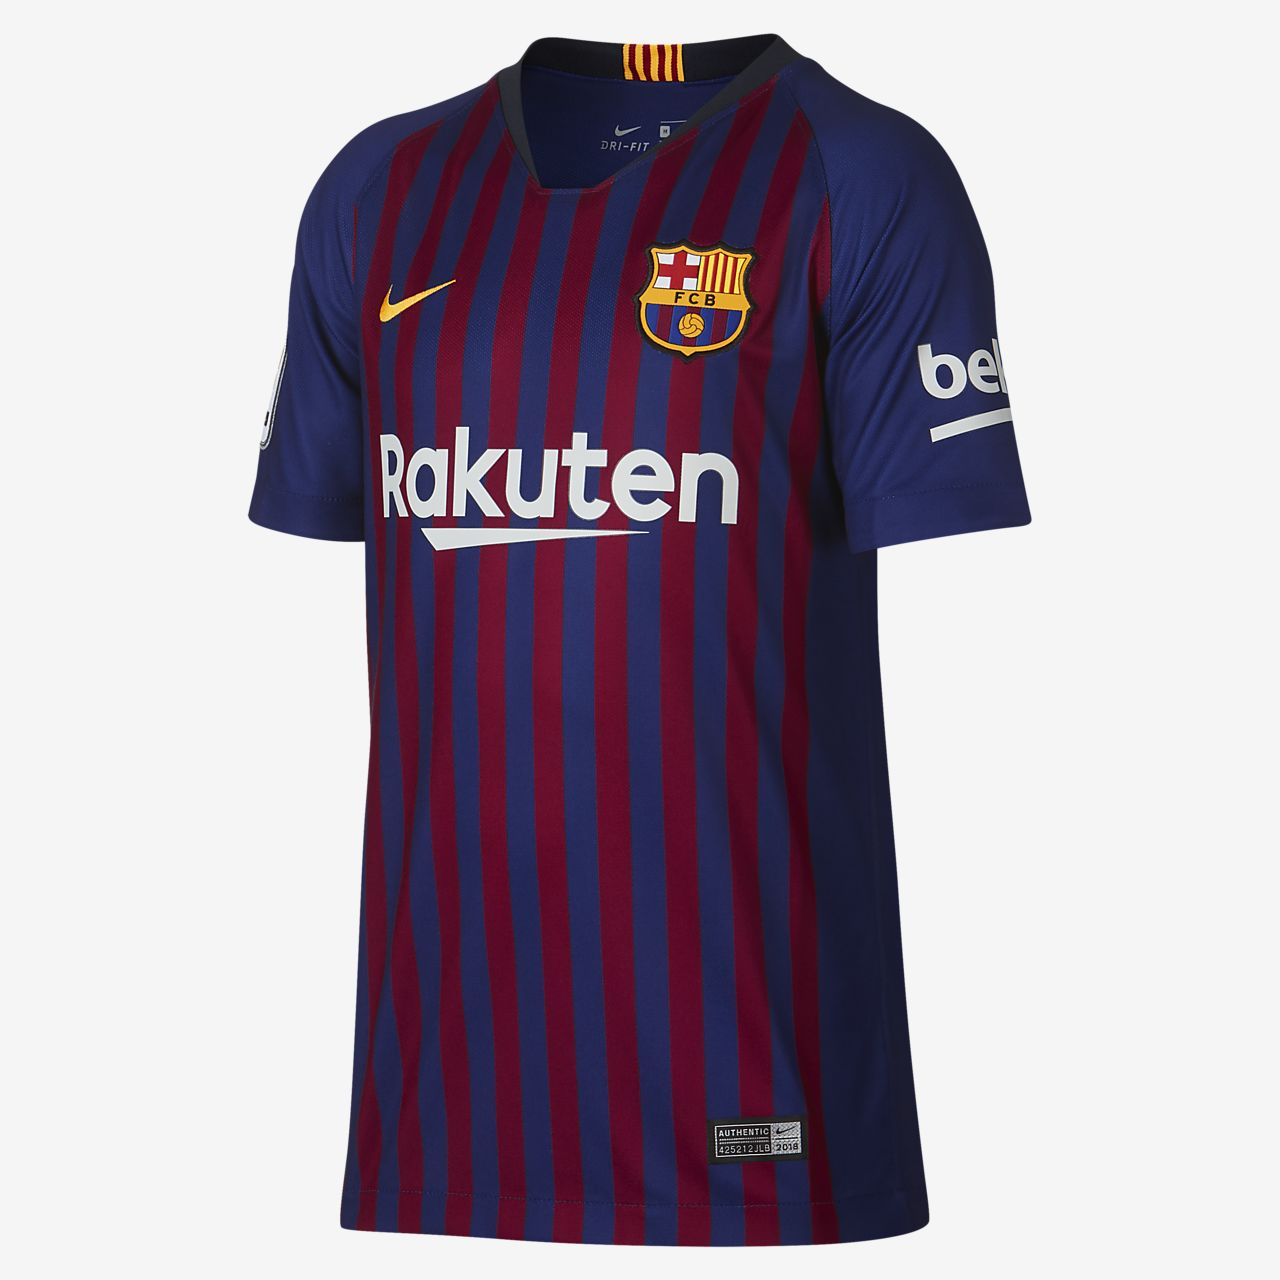 88cf846a4 ... reduced 2018 19 fc barcelona stadium home philippe coutinho big kids  soccer jersey 56809 f7d41